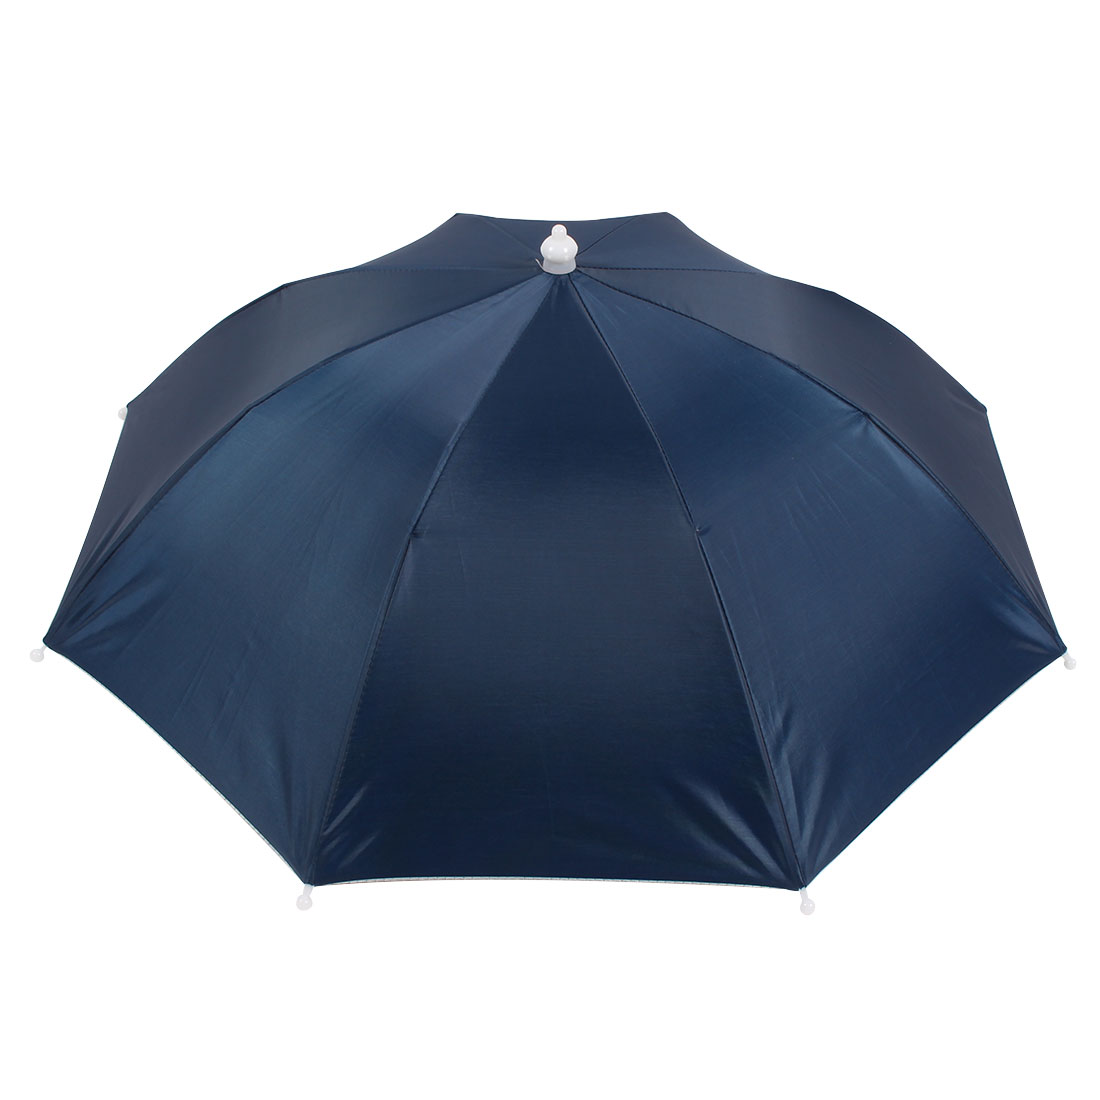 Outdoor Sports Elastic Band Fishing Rain Sun Umbrella Hat Indigo Blue